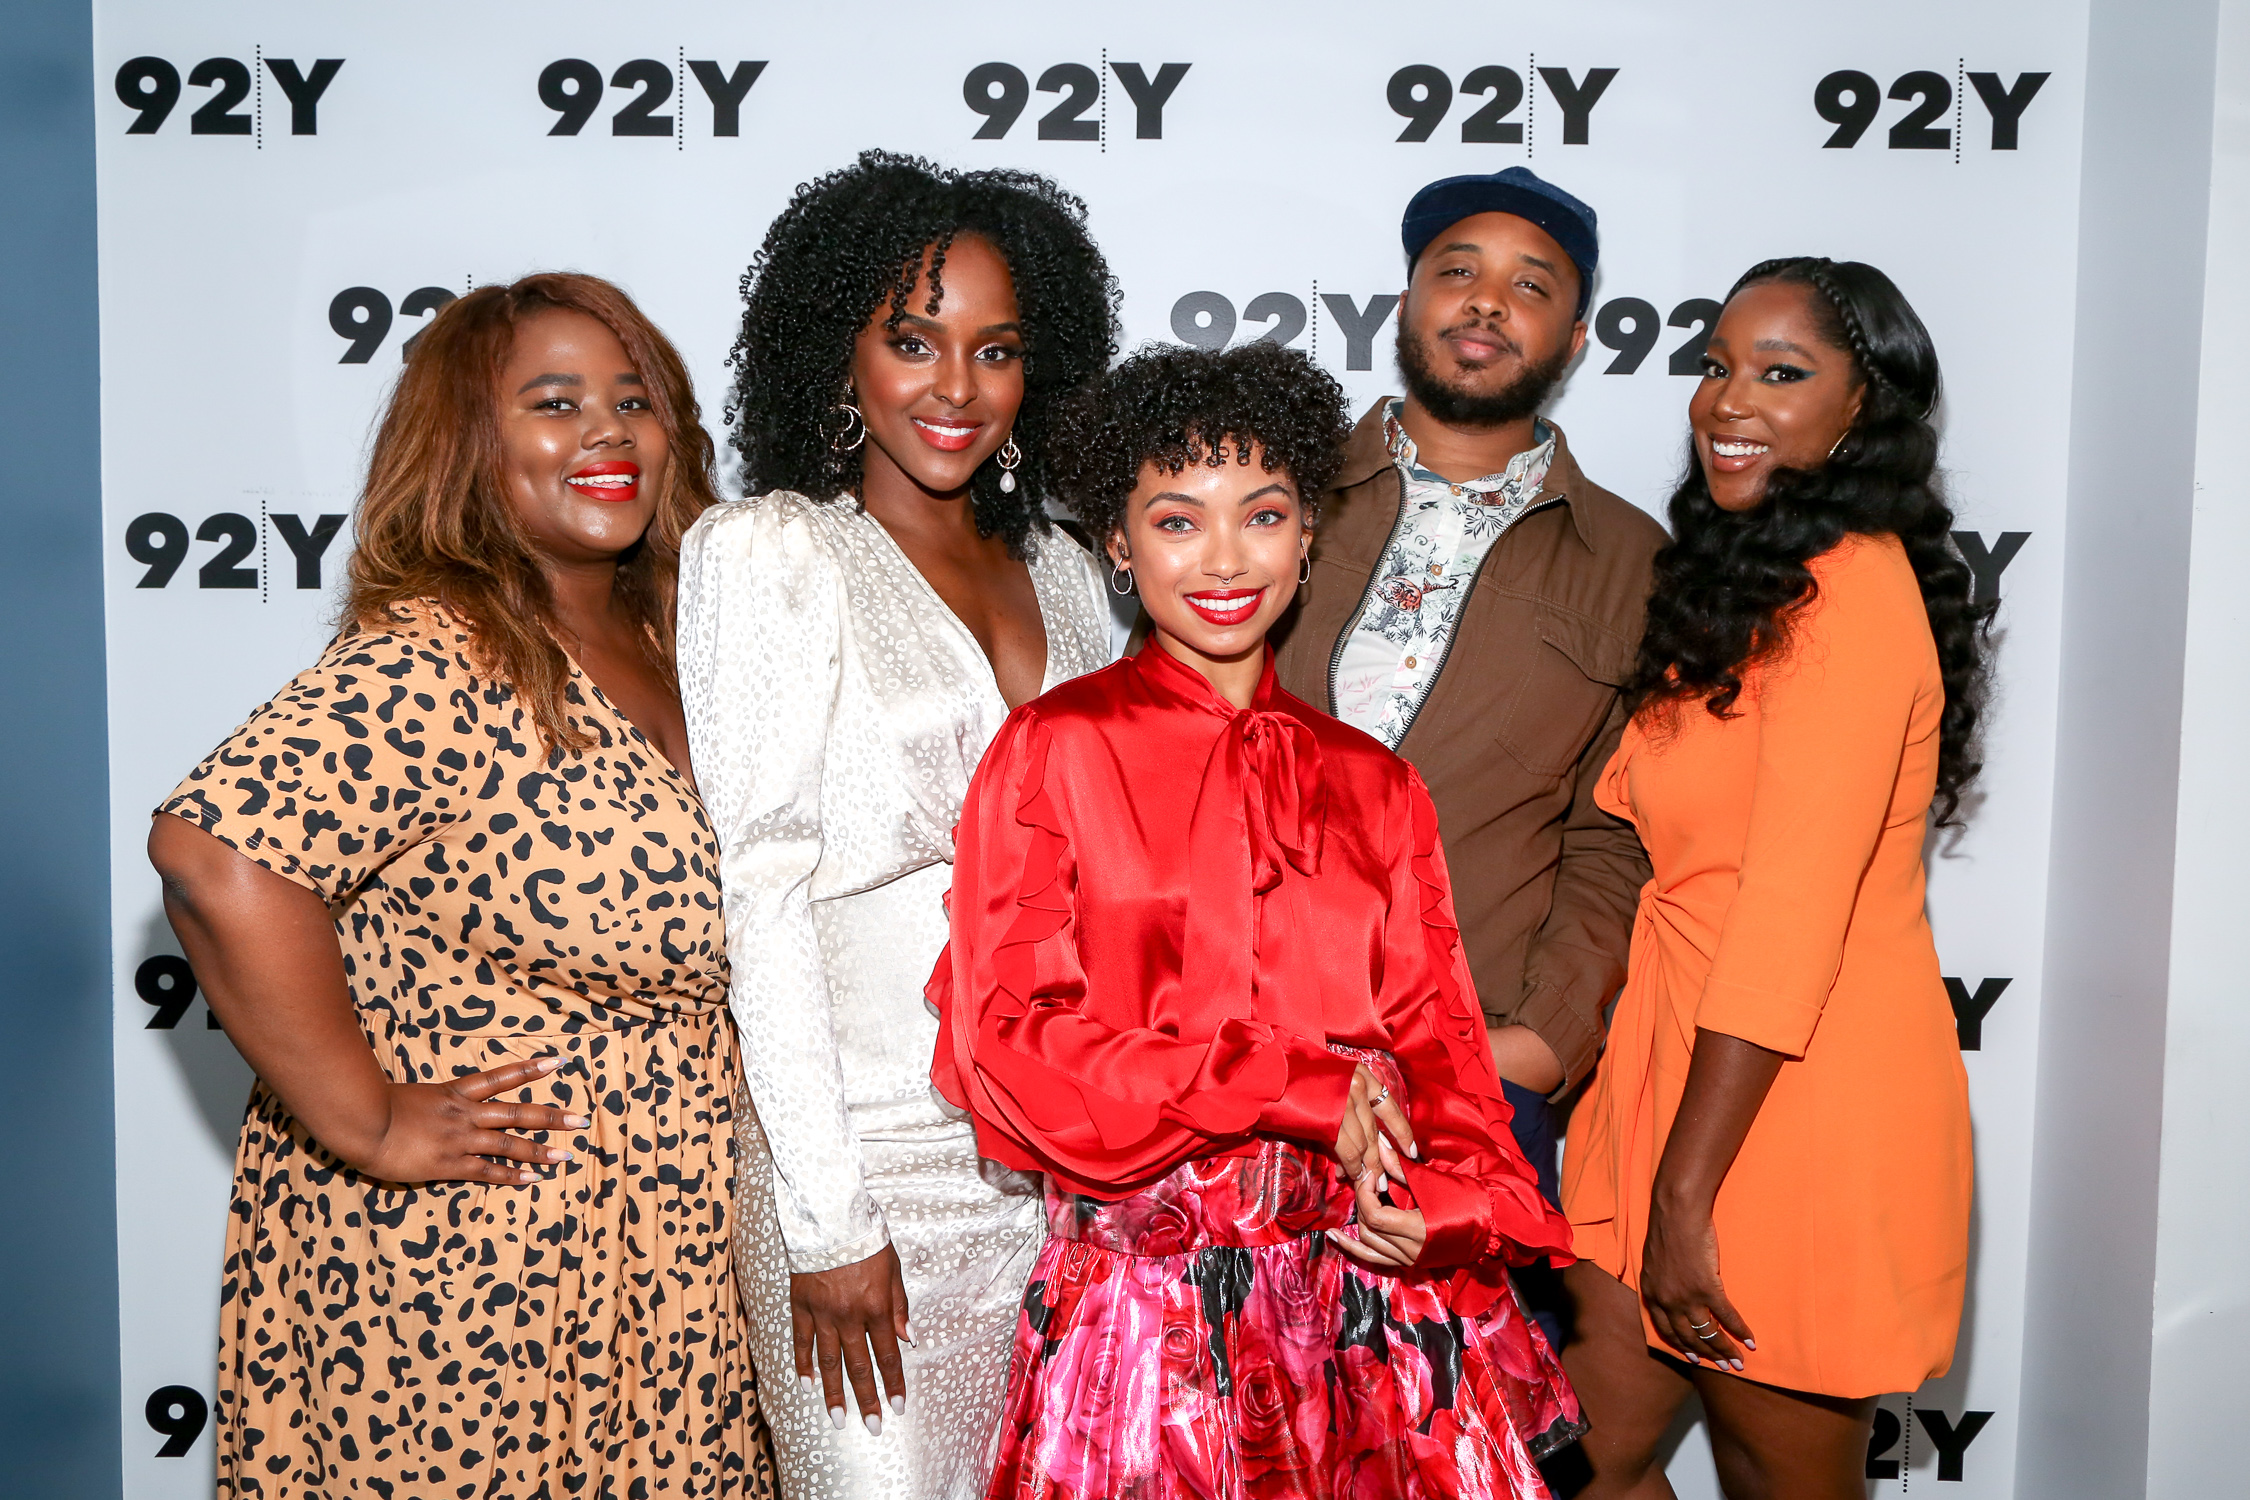 Sylvia Obell, Antoinette Roberston, Logan Browning, Justin Simien, Ashley Blaine Featherson  Photo Credit: Rod Morata/Michael Priest Photography